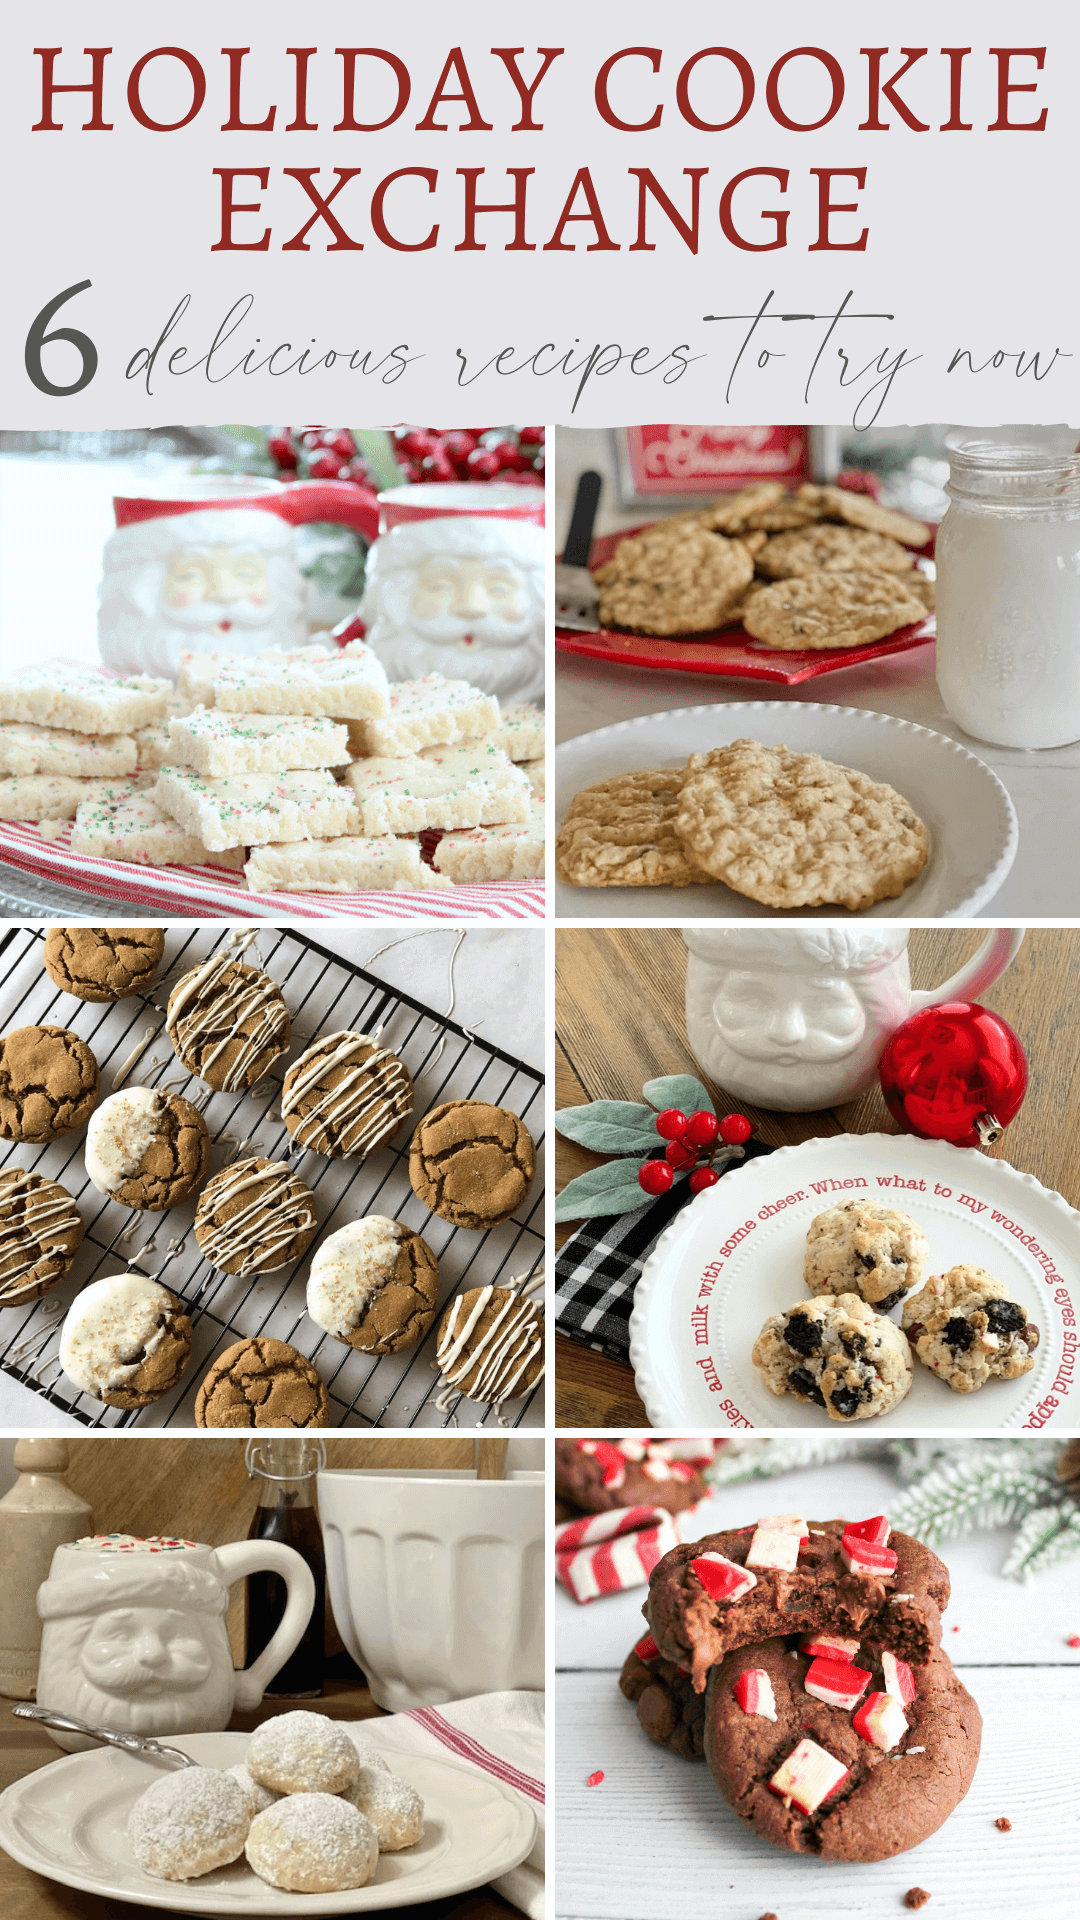 6 delicious recipes to try for holiday cookies!